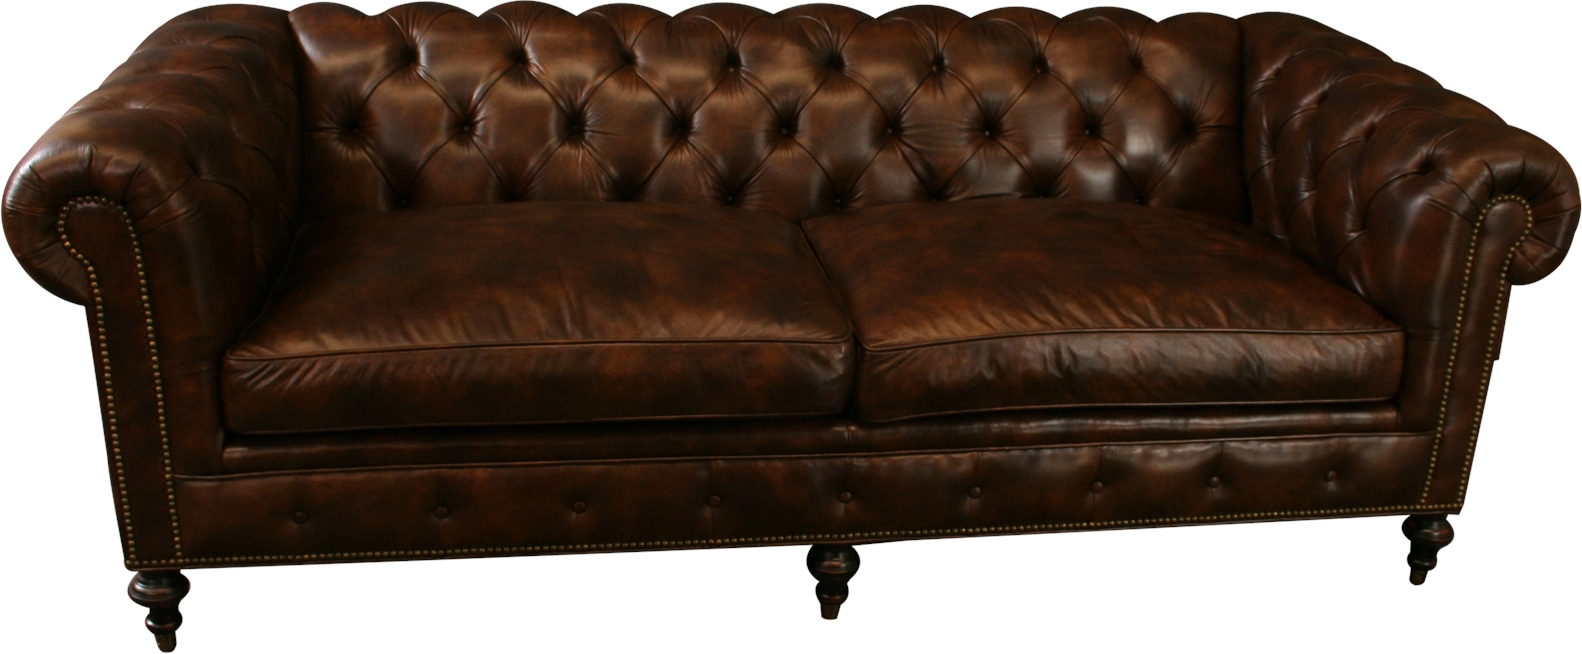 Ebay Sofas Details About New Leather Chesterfield Sofa Wood Brown Top Grain Leather Nailhead Trim